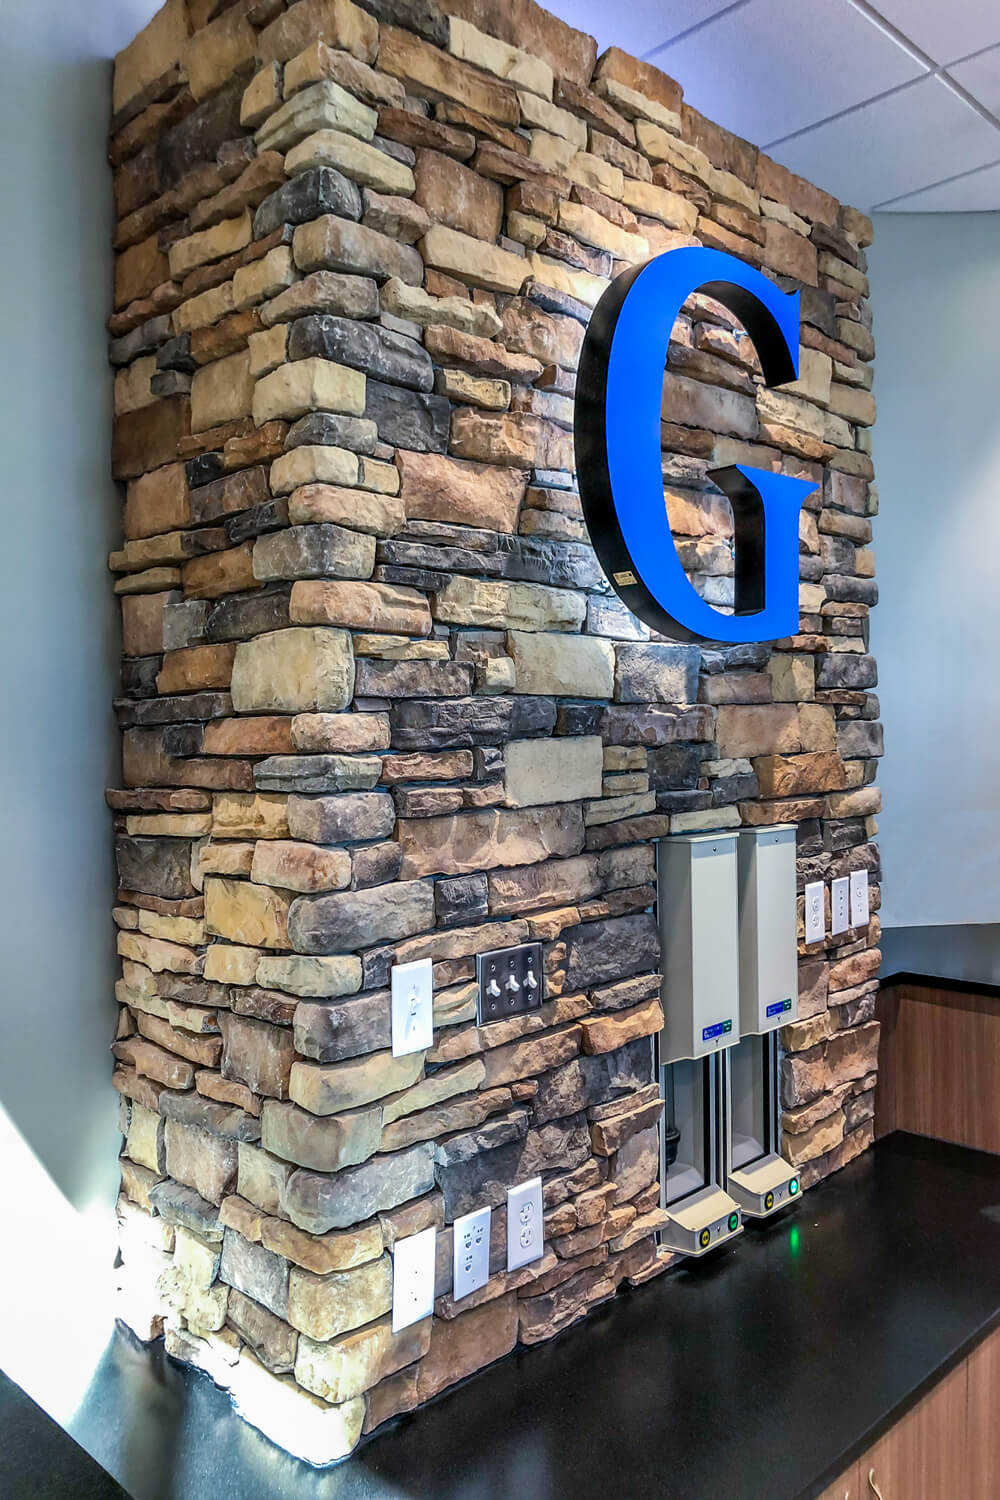 Guardian Credit Union - Logo at Stone Wall - Designed by Foshee Architecture